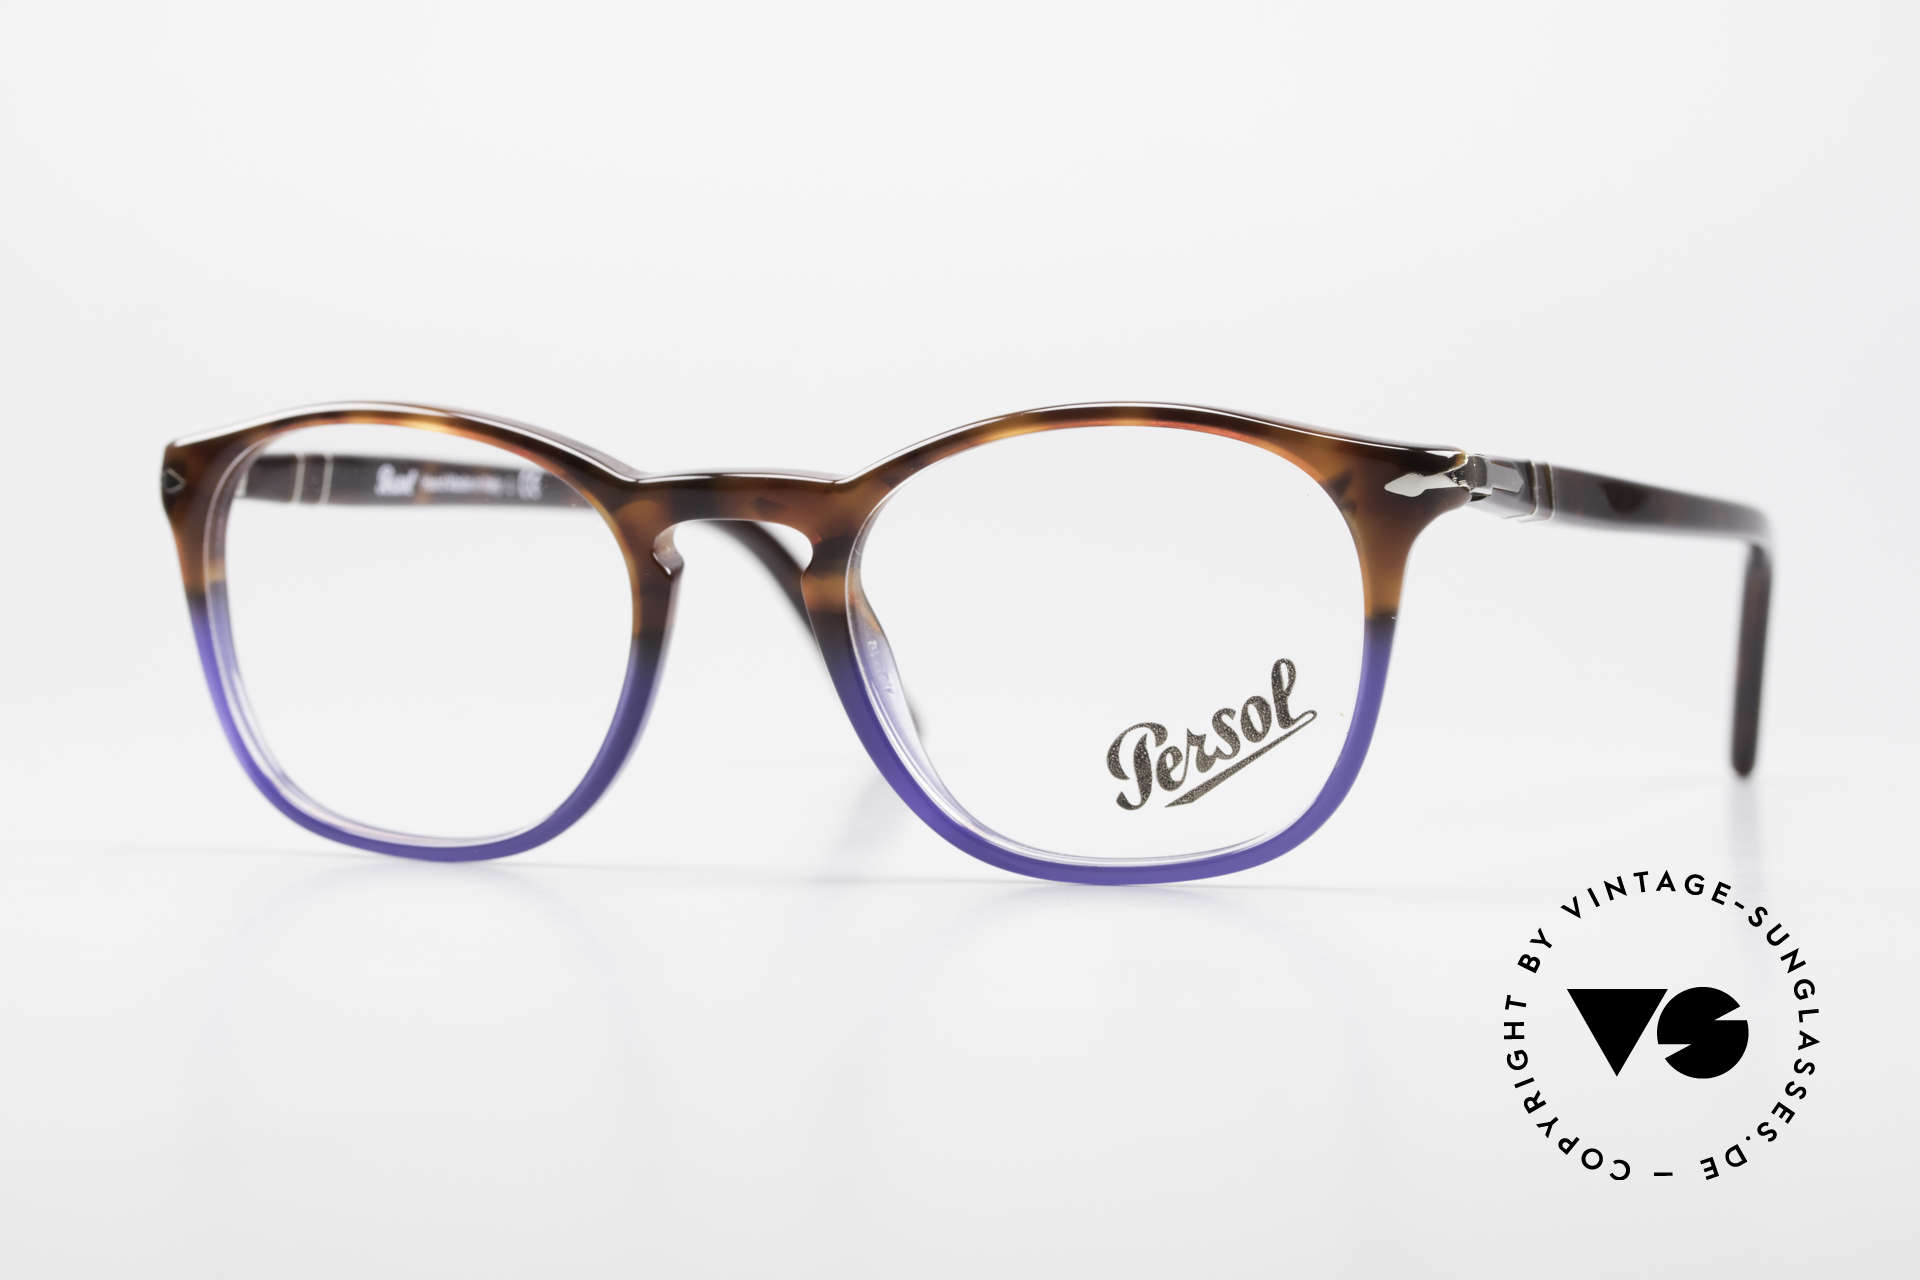 Persol 3007 Terrae Oceano Edition Small, Persol glasses, mod. 3007 in SMALL size 48/19, Made for Men and Women